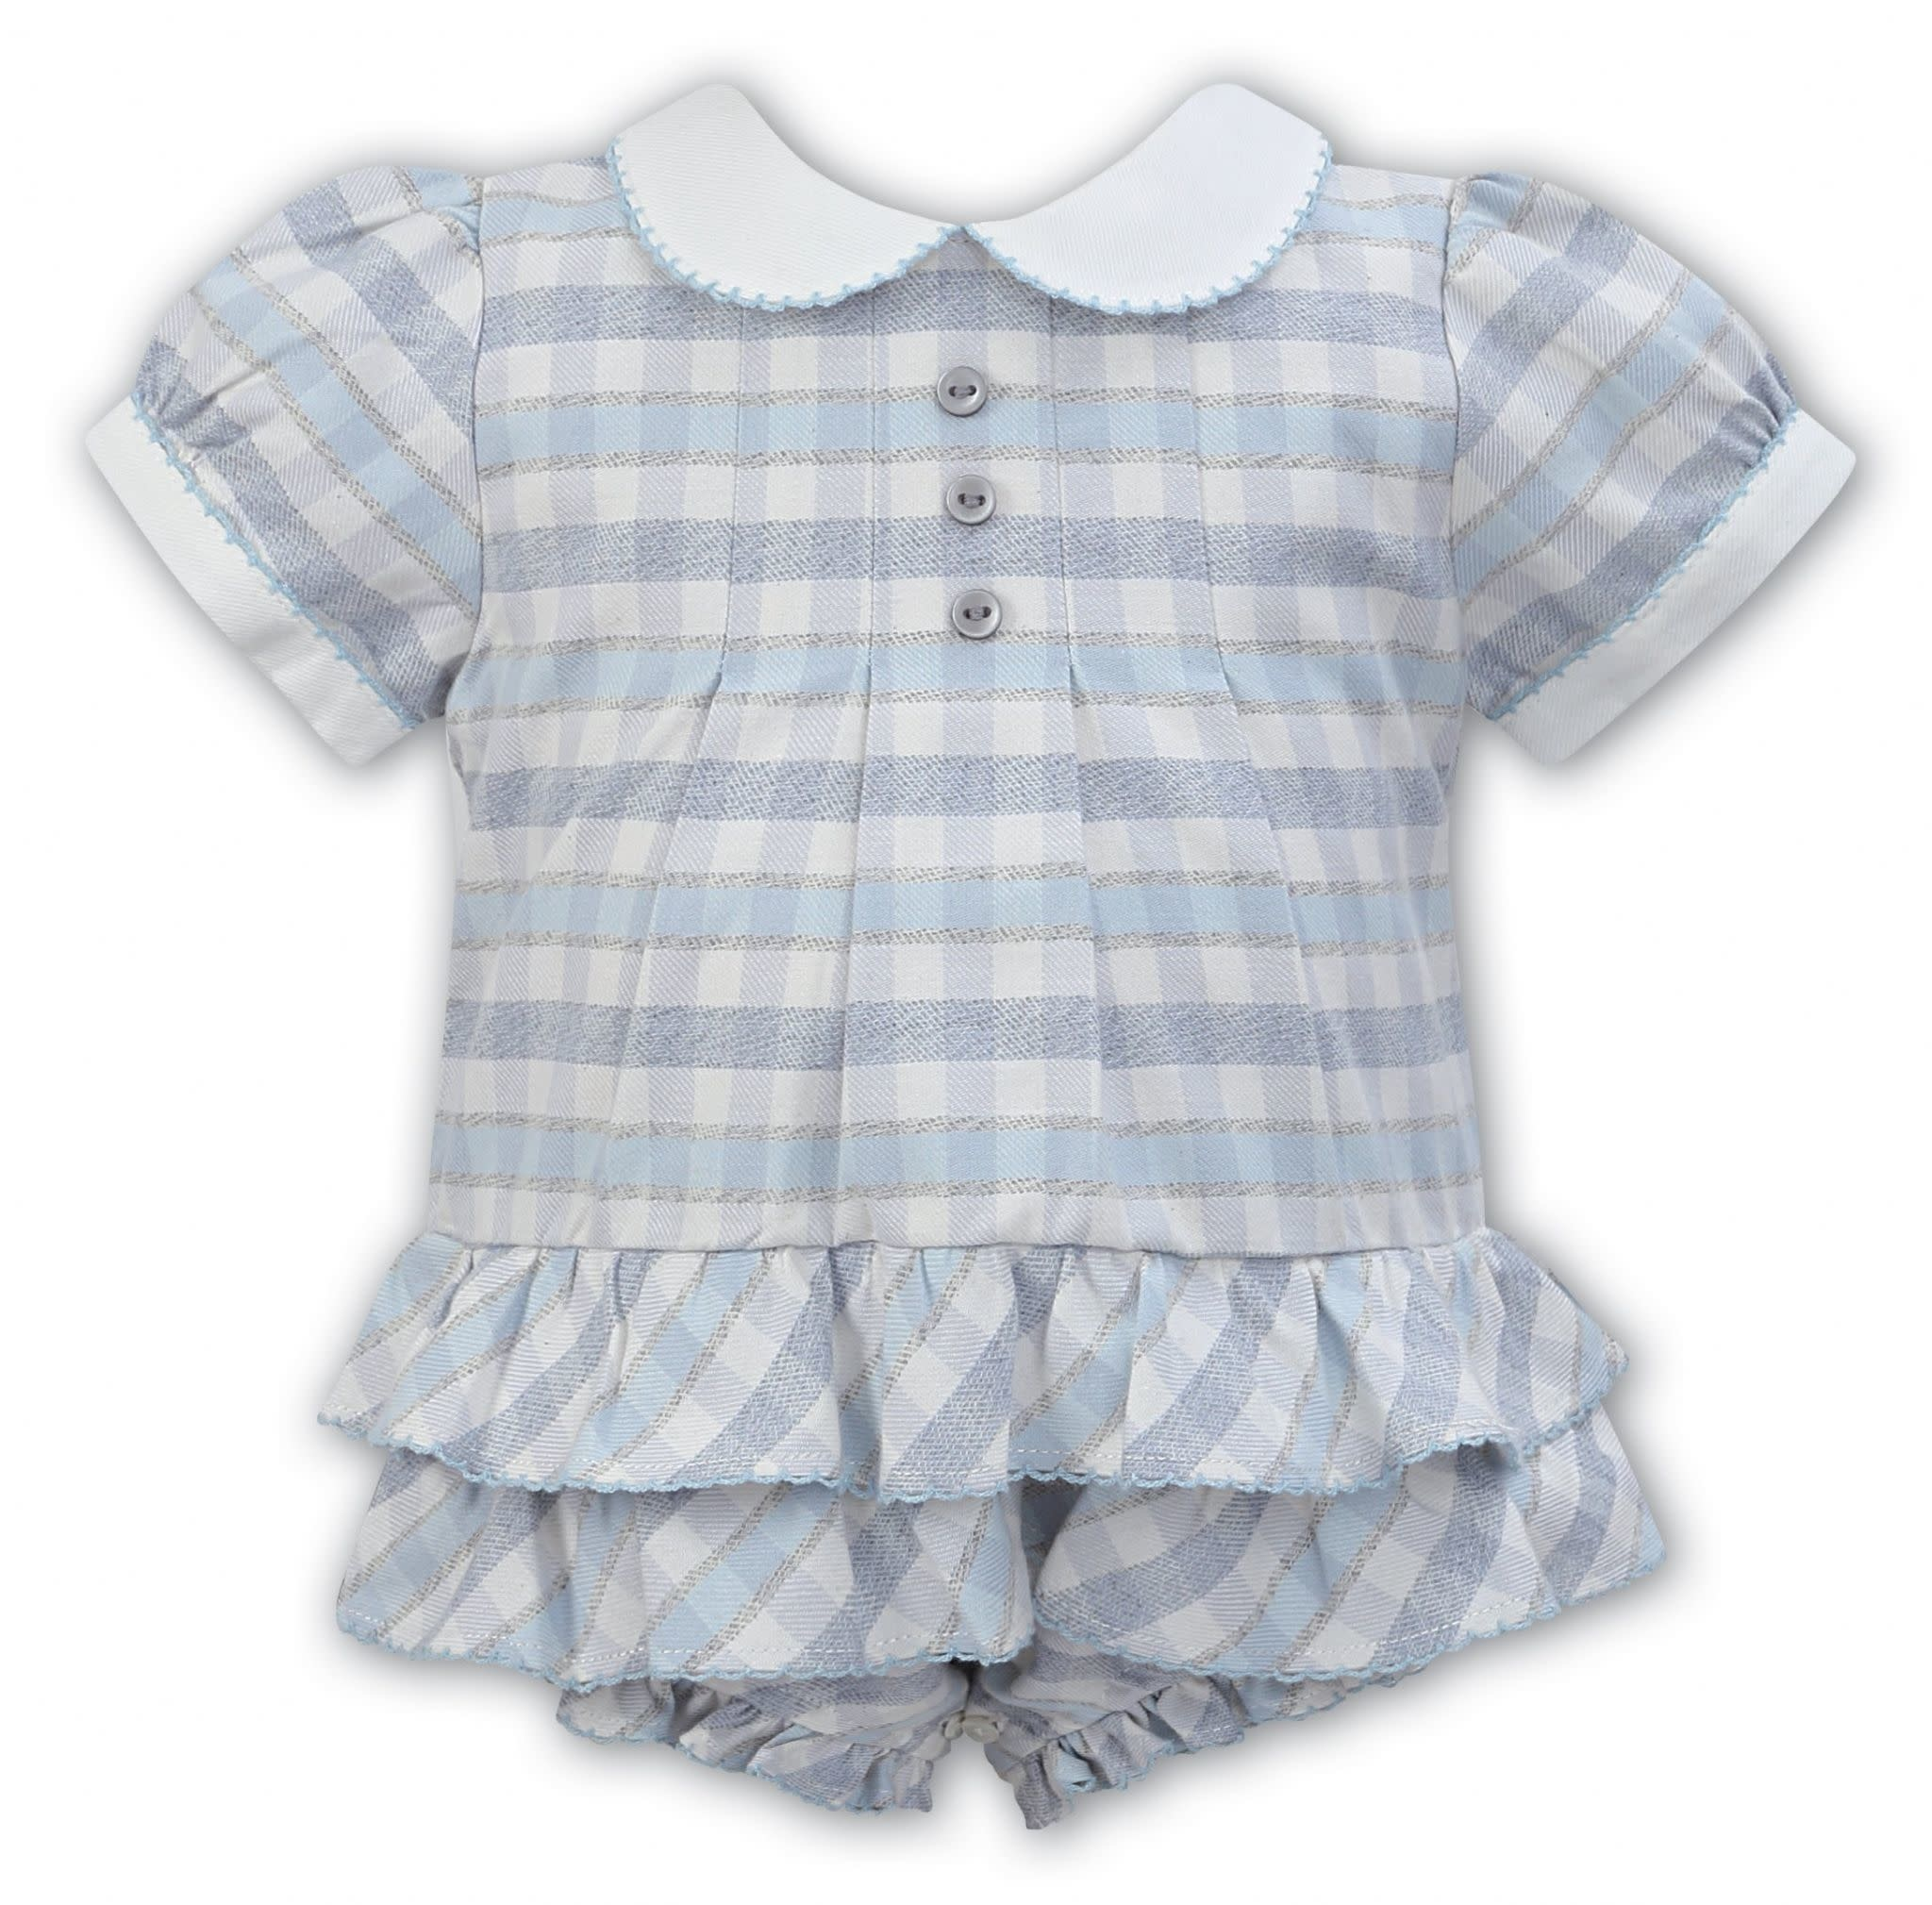 Sarah Louise Sarah Louise NEW AW19 Bubble Romper Ivory and Blue check